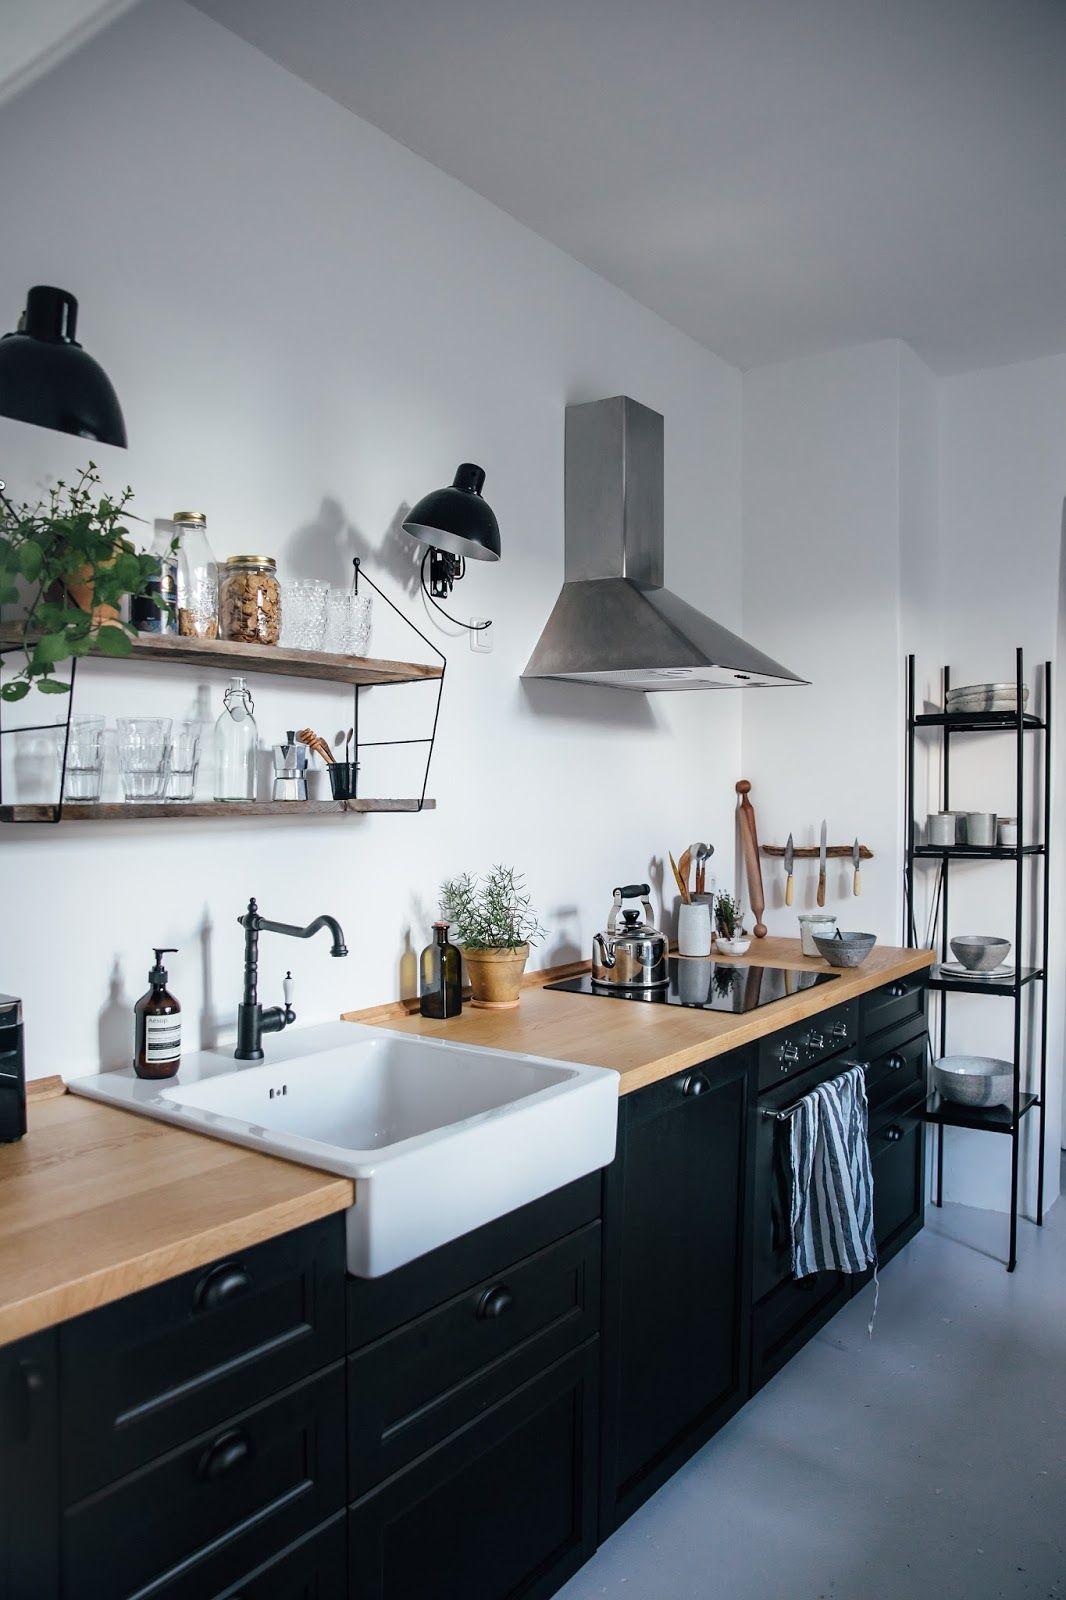 our new ikea kitchen in the countryside | Interior design